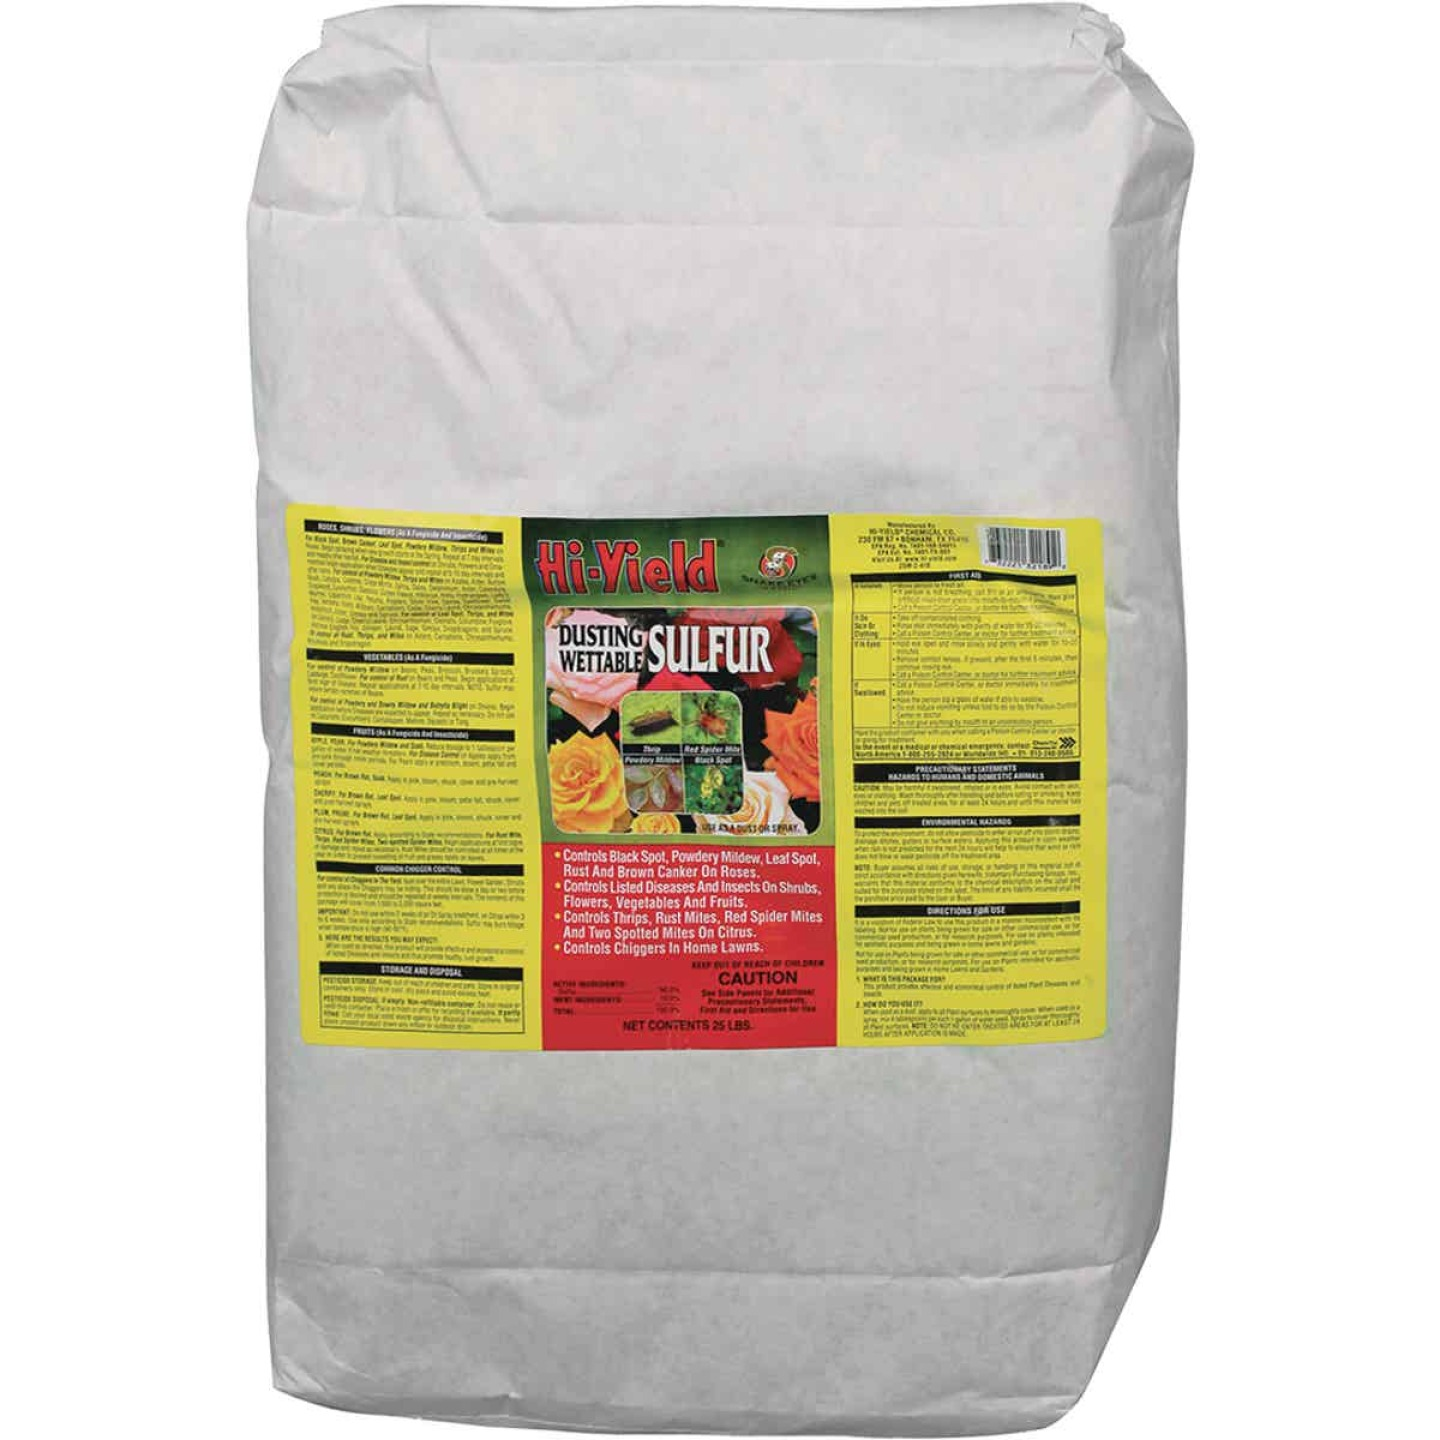 Hi-Yield 25 Lb. Powder Concentrate Wettable Sulphur Fungicide Image 1